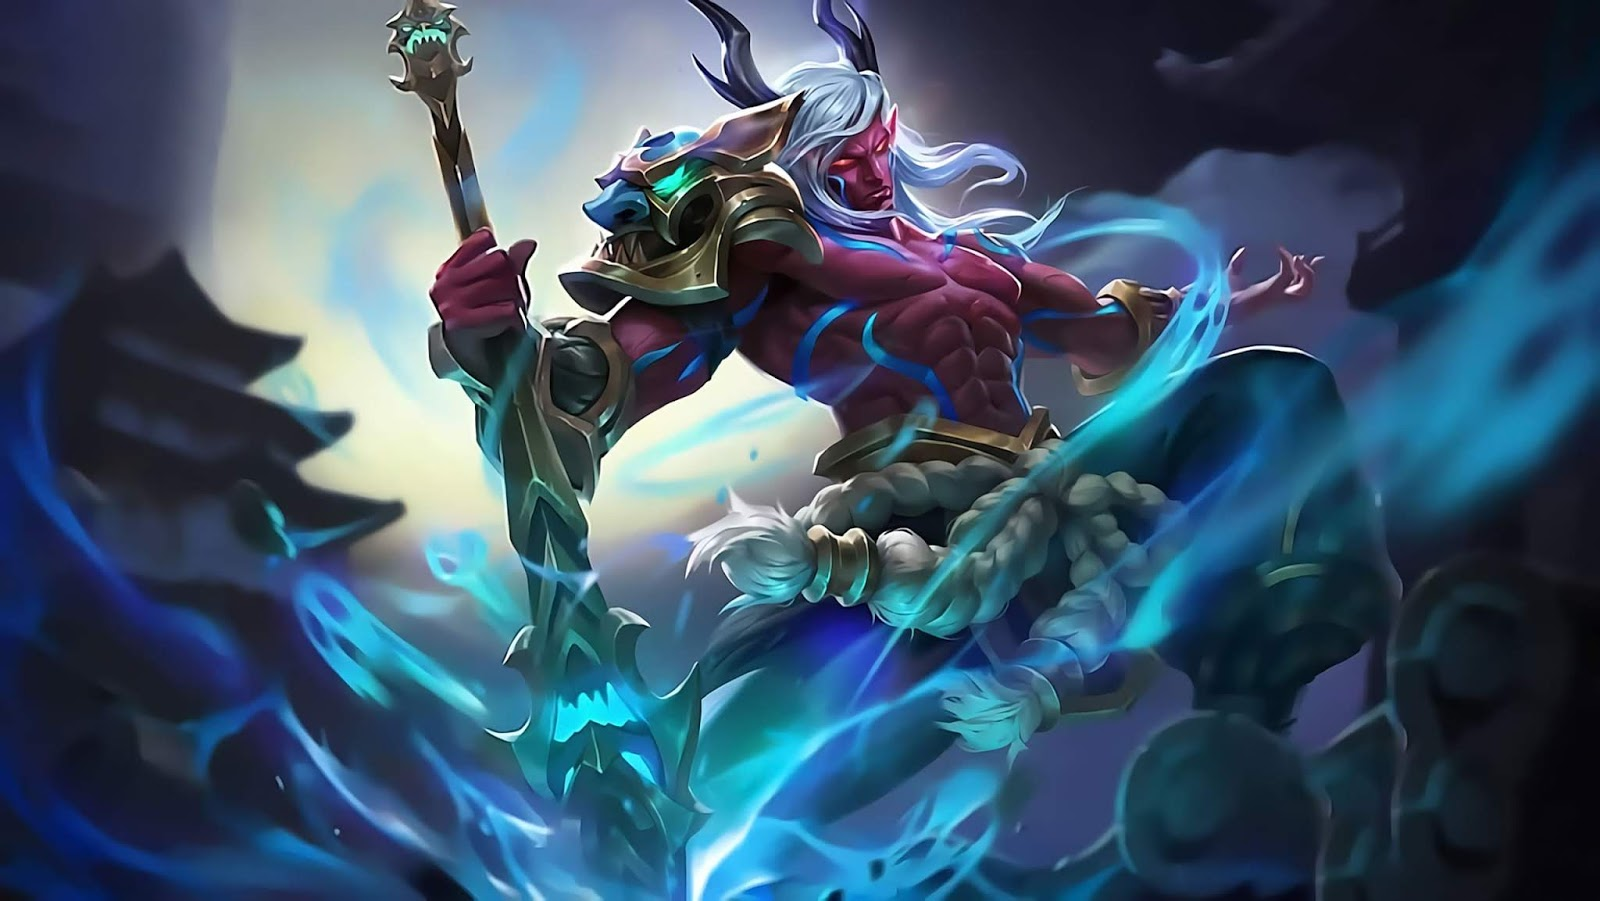 Wallpaper Moskov Yasha Skin Mobile Legends Full HD for PC